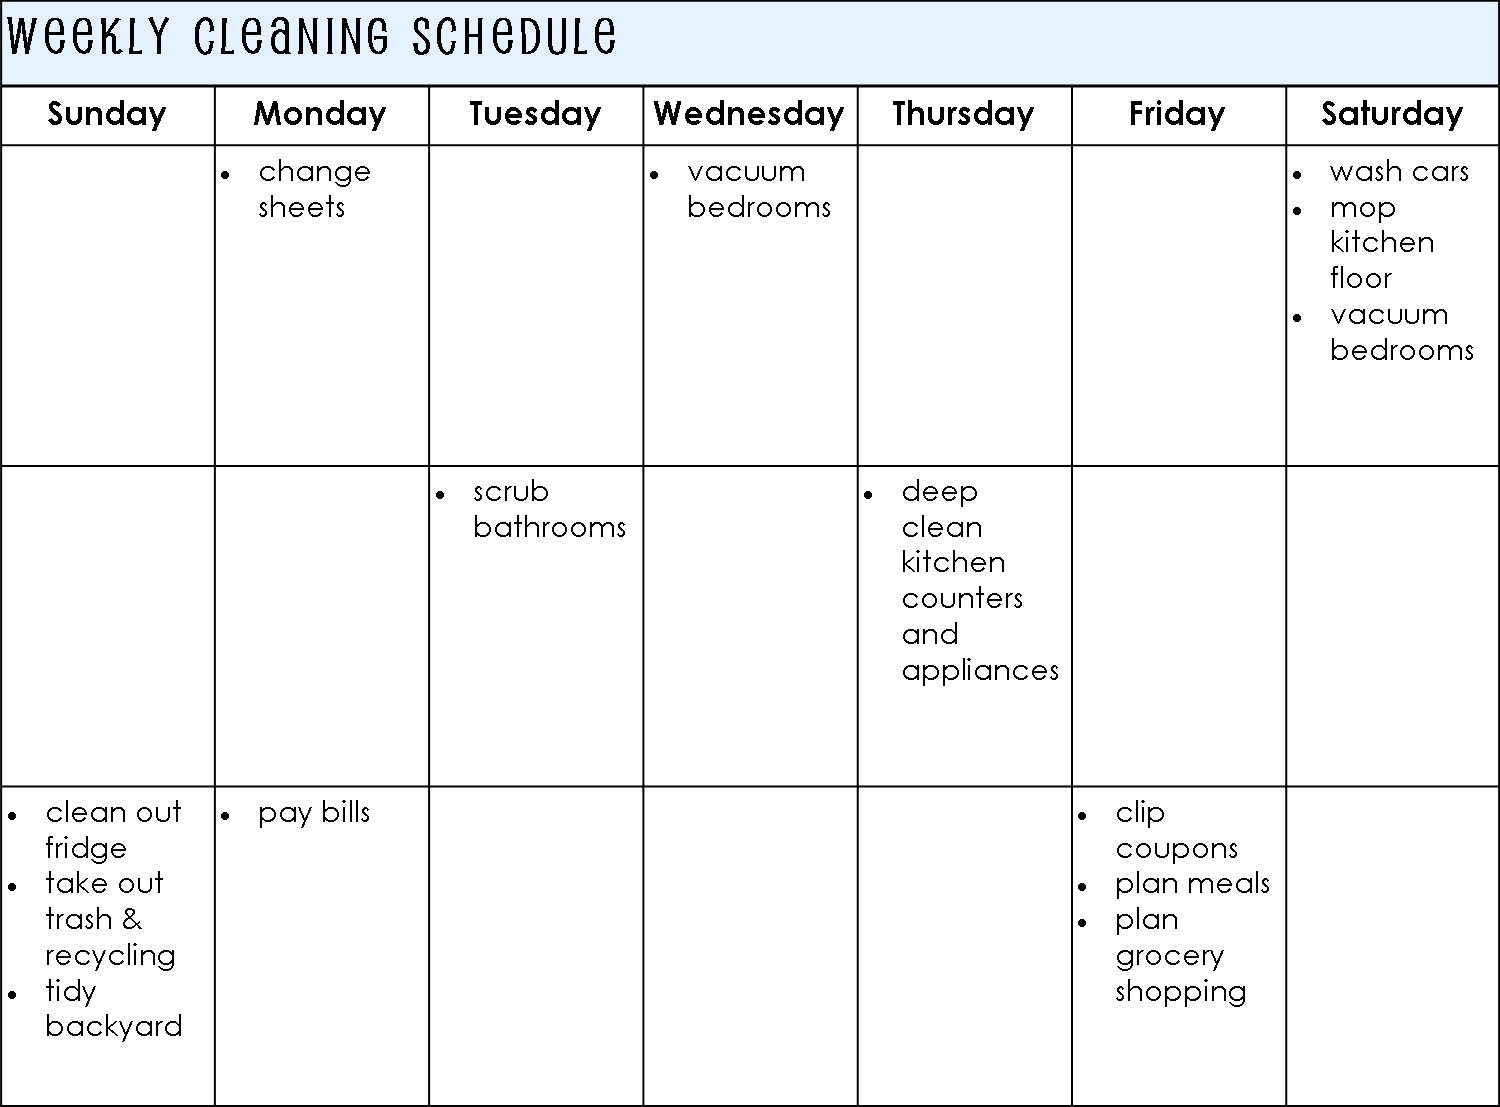 Establishing a Cleaning Schedule for Your Home   Life As MomEstablishing a Cleaning Schedule for Your Home